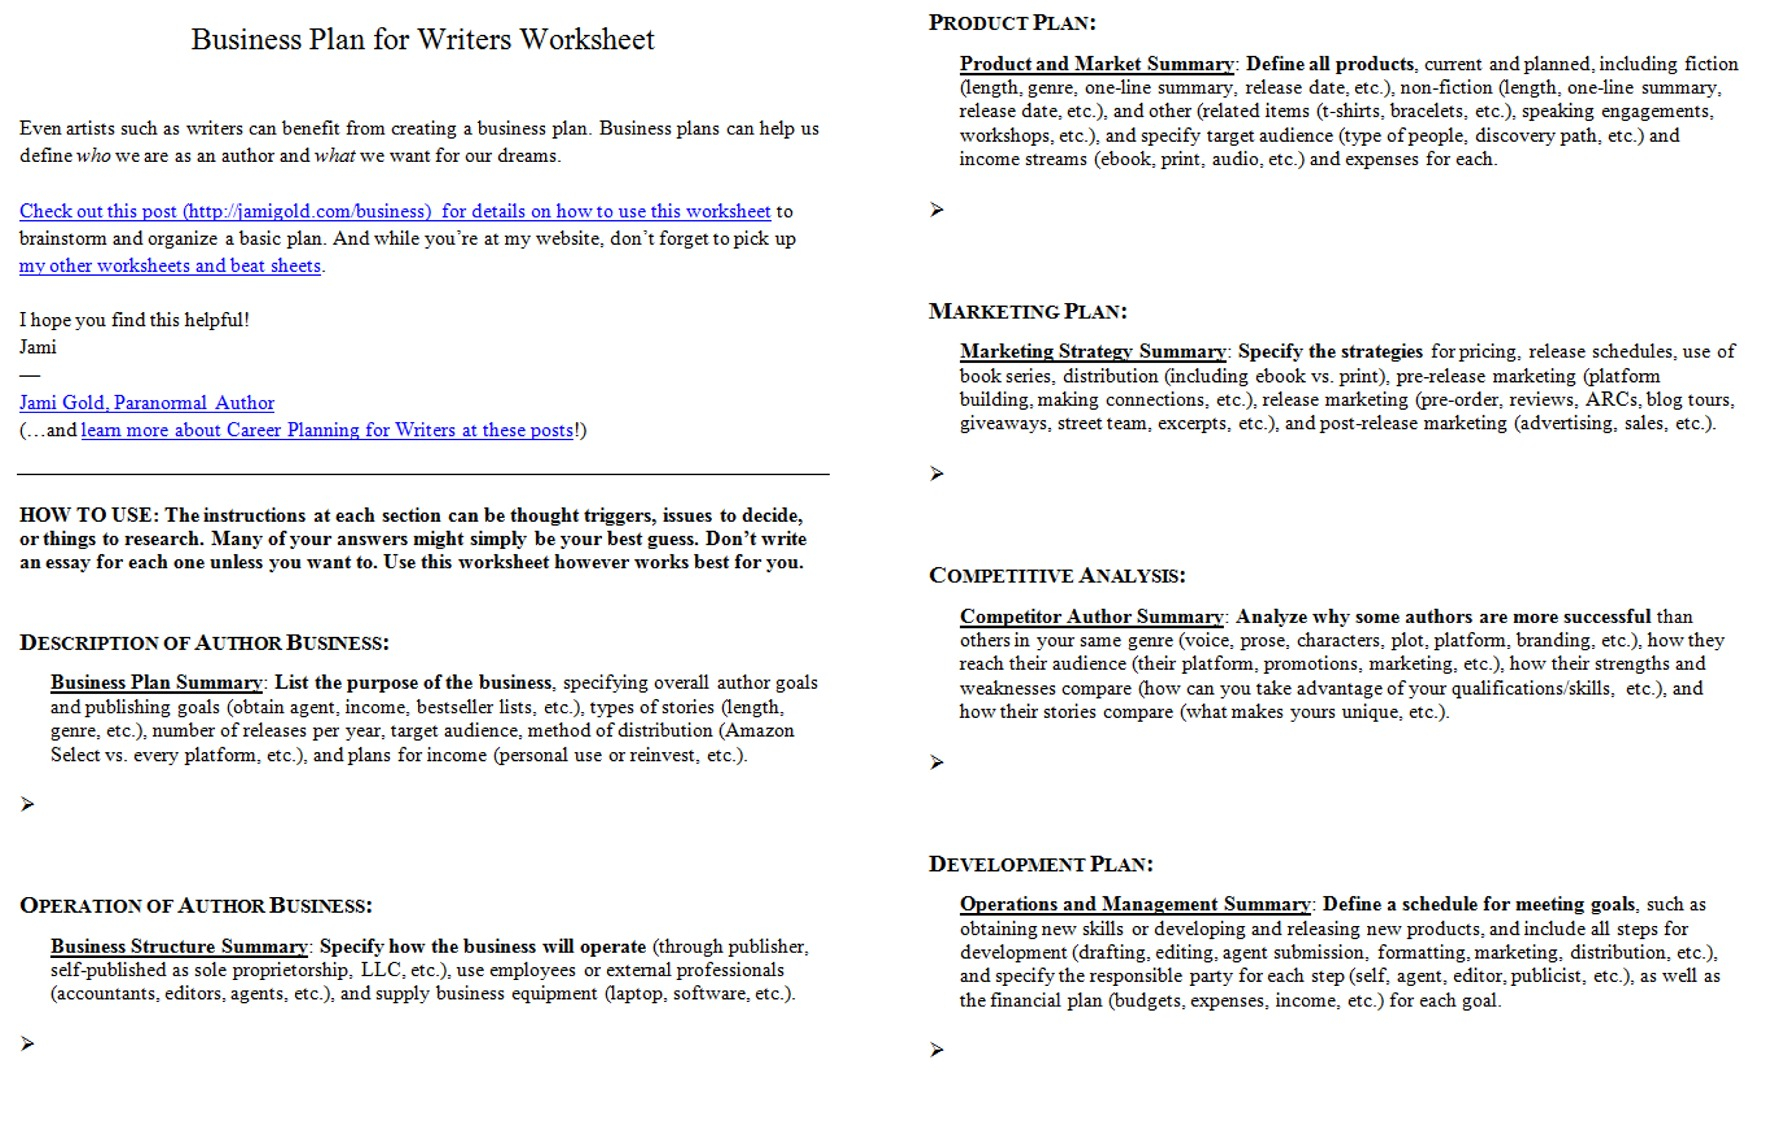 Proatmealus  Marvelous Worksheets For Writers  Jami Gold Paranormal Author With Fetching Screen Shot Of Both Pages Of The Business Plan For Writers Worksheet With Beauteous Adding And Subtracting Unlike Denominators Worksheets Also Cut And Paste Sentence Worksheets In Addition Printable Worksheets For  Year Olds And David Goes To School Worksheets As Well As Absolute Values Worksheet Additionally Practice Writing A B C Worksheets From Jamigoldcom With Proatmealus  Fetching Worksheets For Writers  Jami Gold Paranormal Author With Beauteous Screen Shot Of Both Pages Of The Business Plan For Writers Worksheet And Marvelous Adding And Subtracting Unlike Denominators Worksheets Also Cut And Paste Sentence Worksheets In Addition Printable Worksheets For  Year Olds From Jamigoldcom